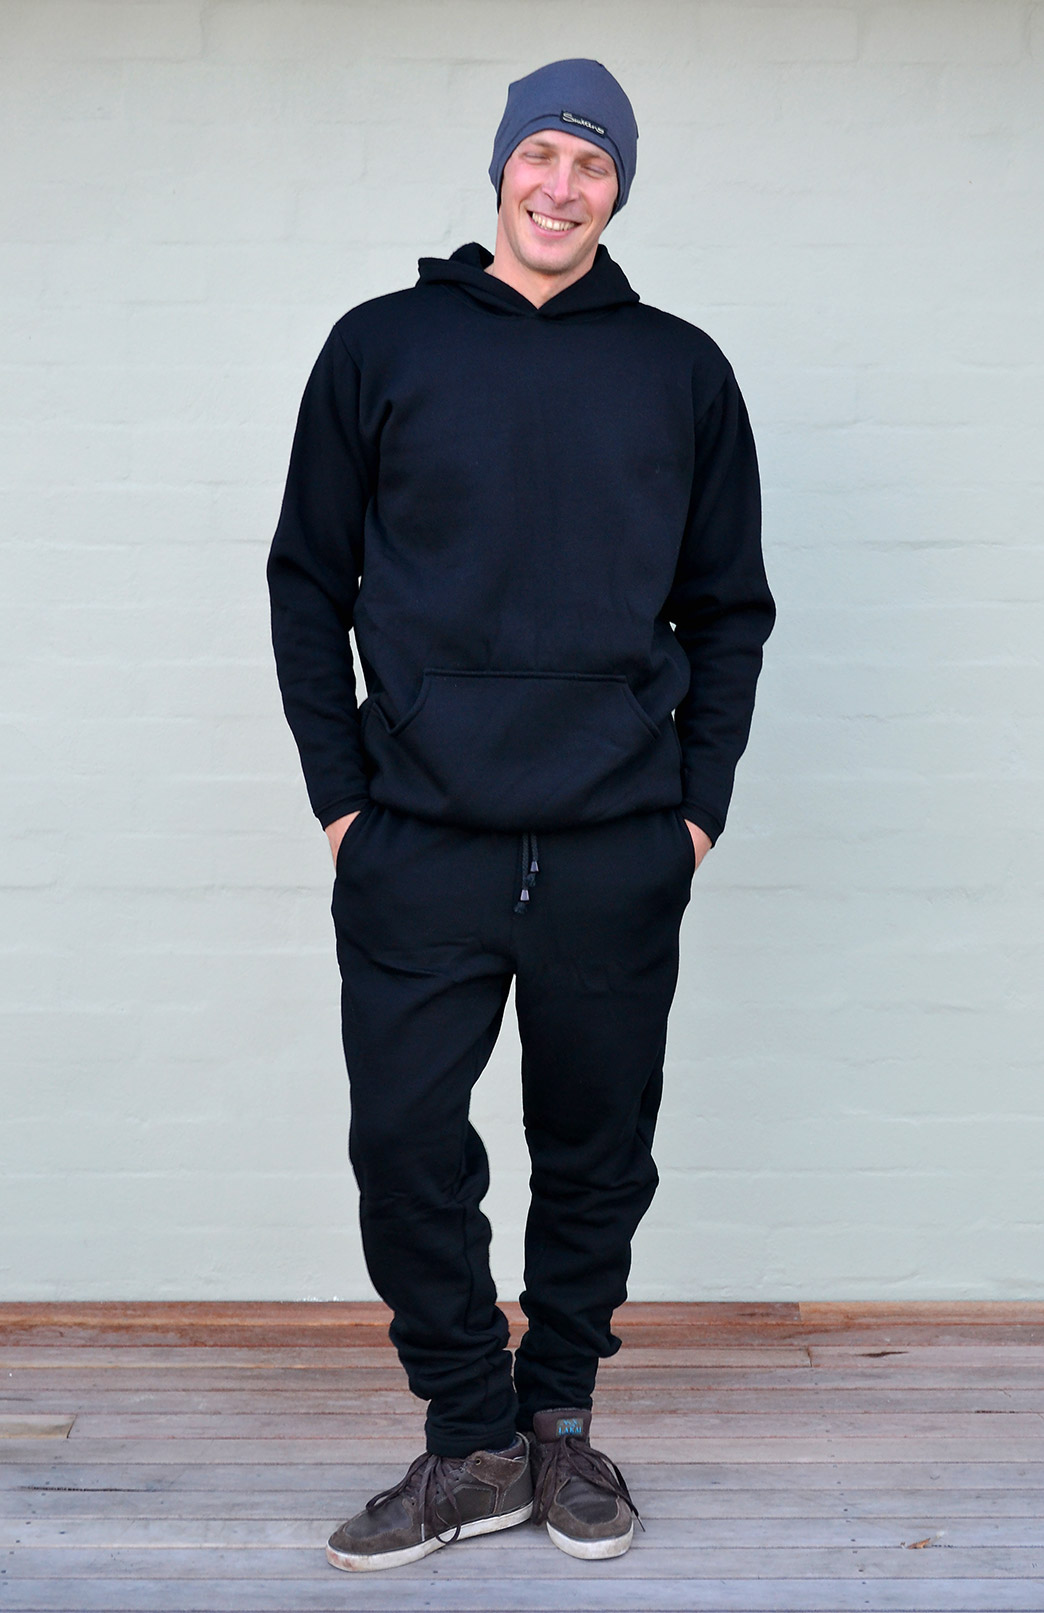 Men's Wool Fleece Track Pants - 350g - Men's Black Merino Wool Fleece Track Pants Joggers - Smitten Merino Tasmania Australia